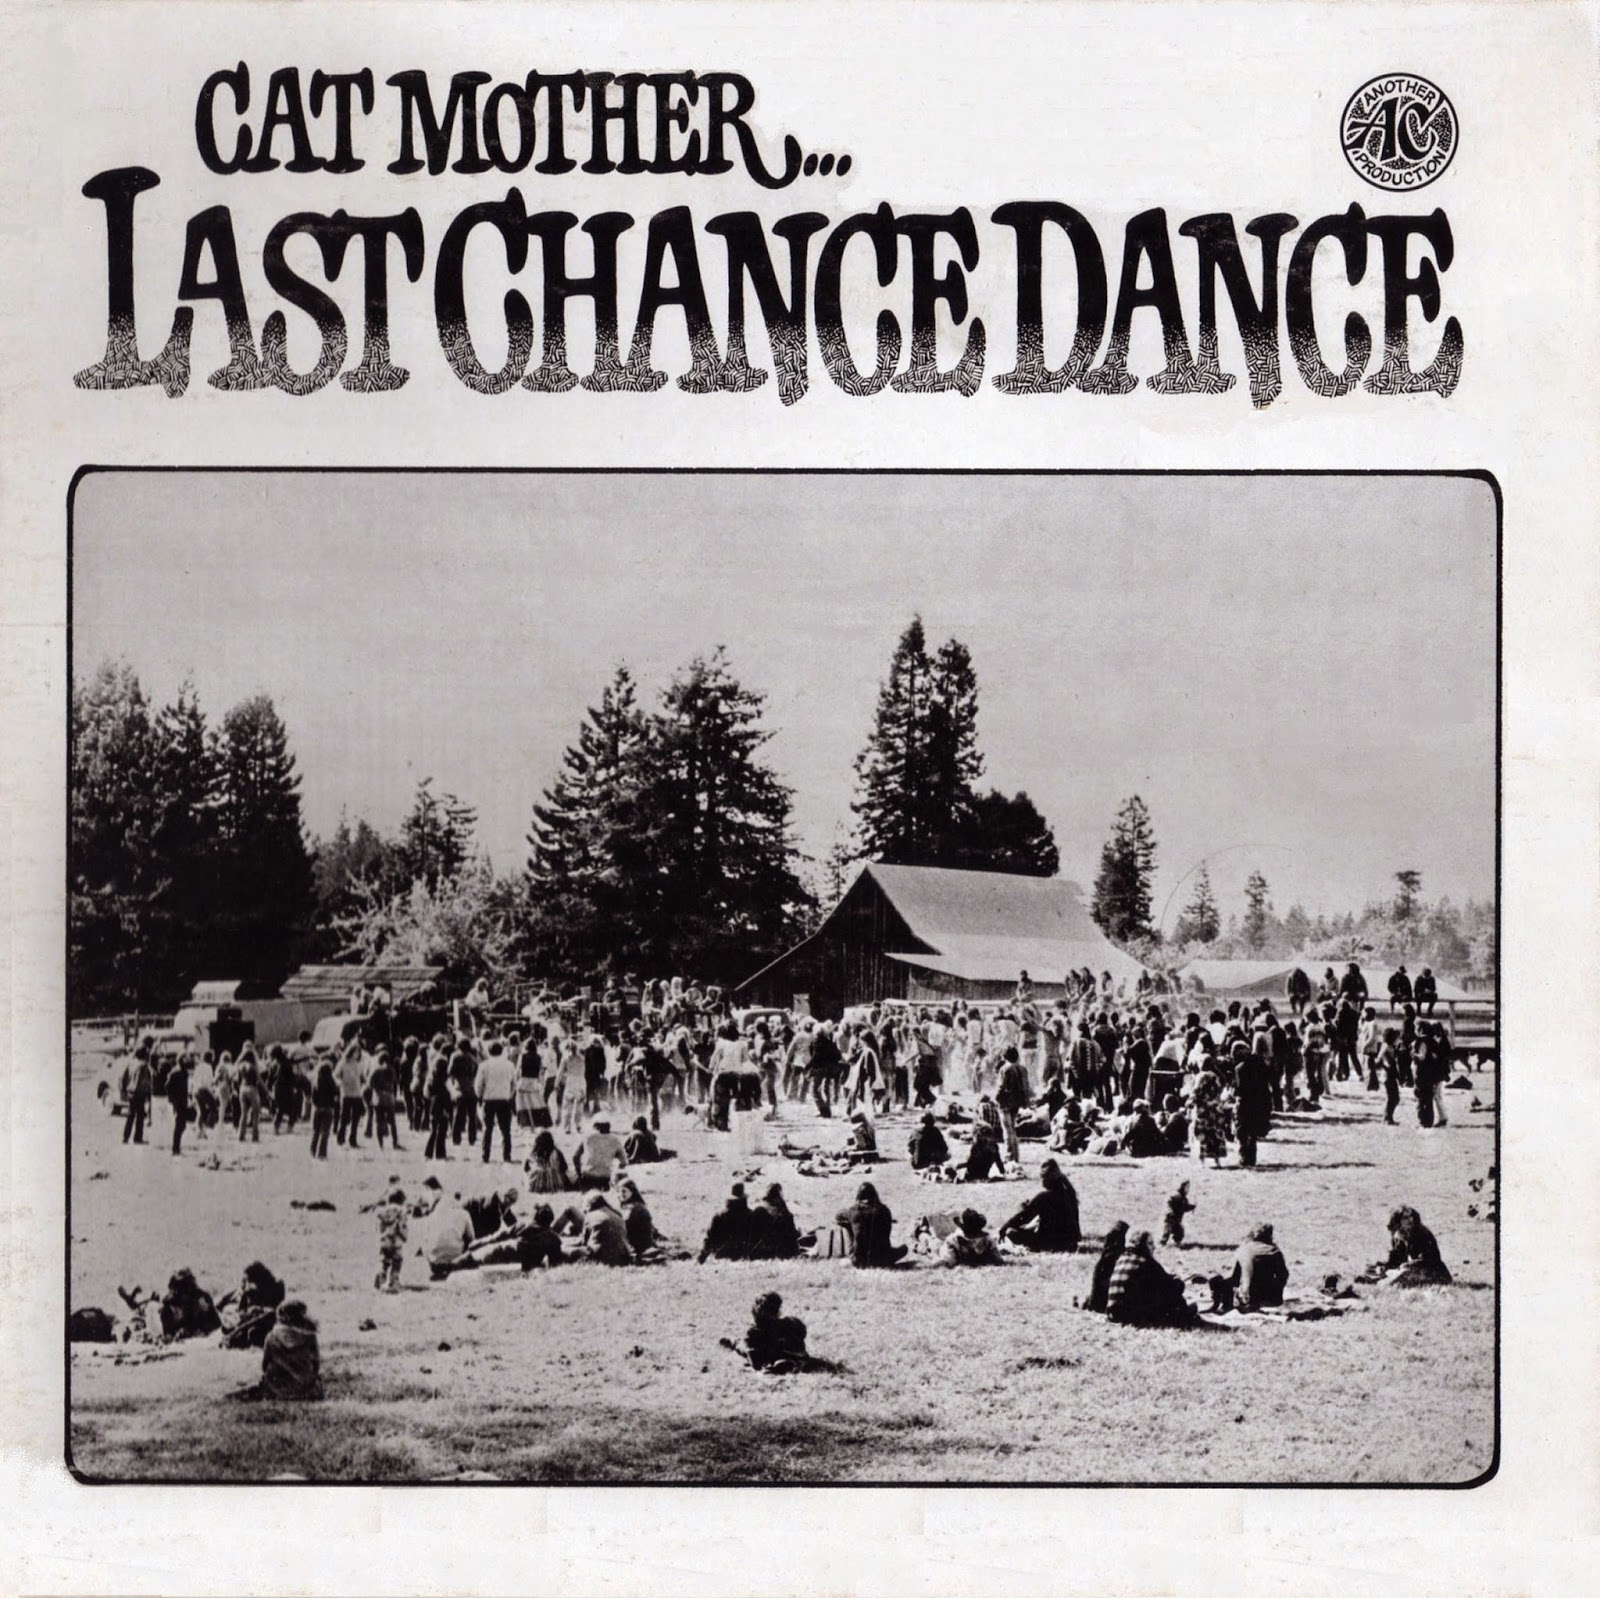 Cat Mother - Last Dance Chance (1973 us classic rock & country folk rock)